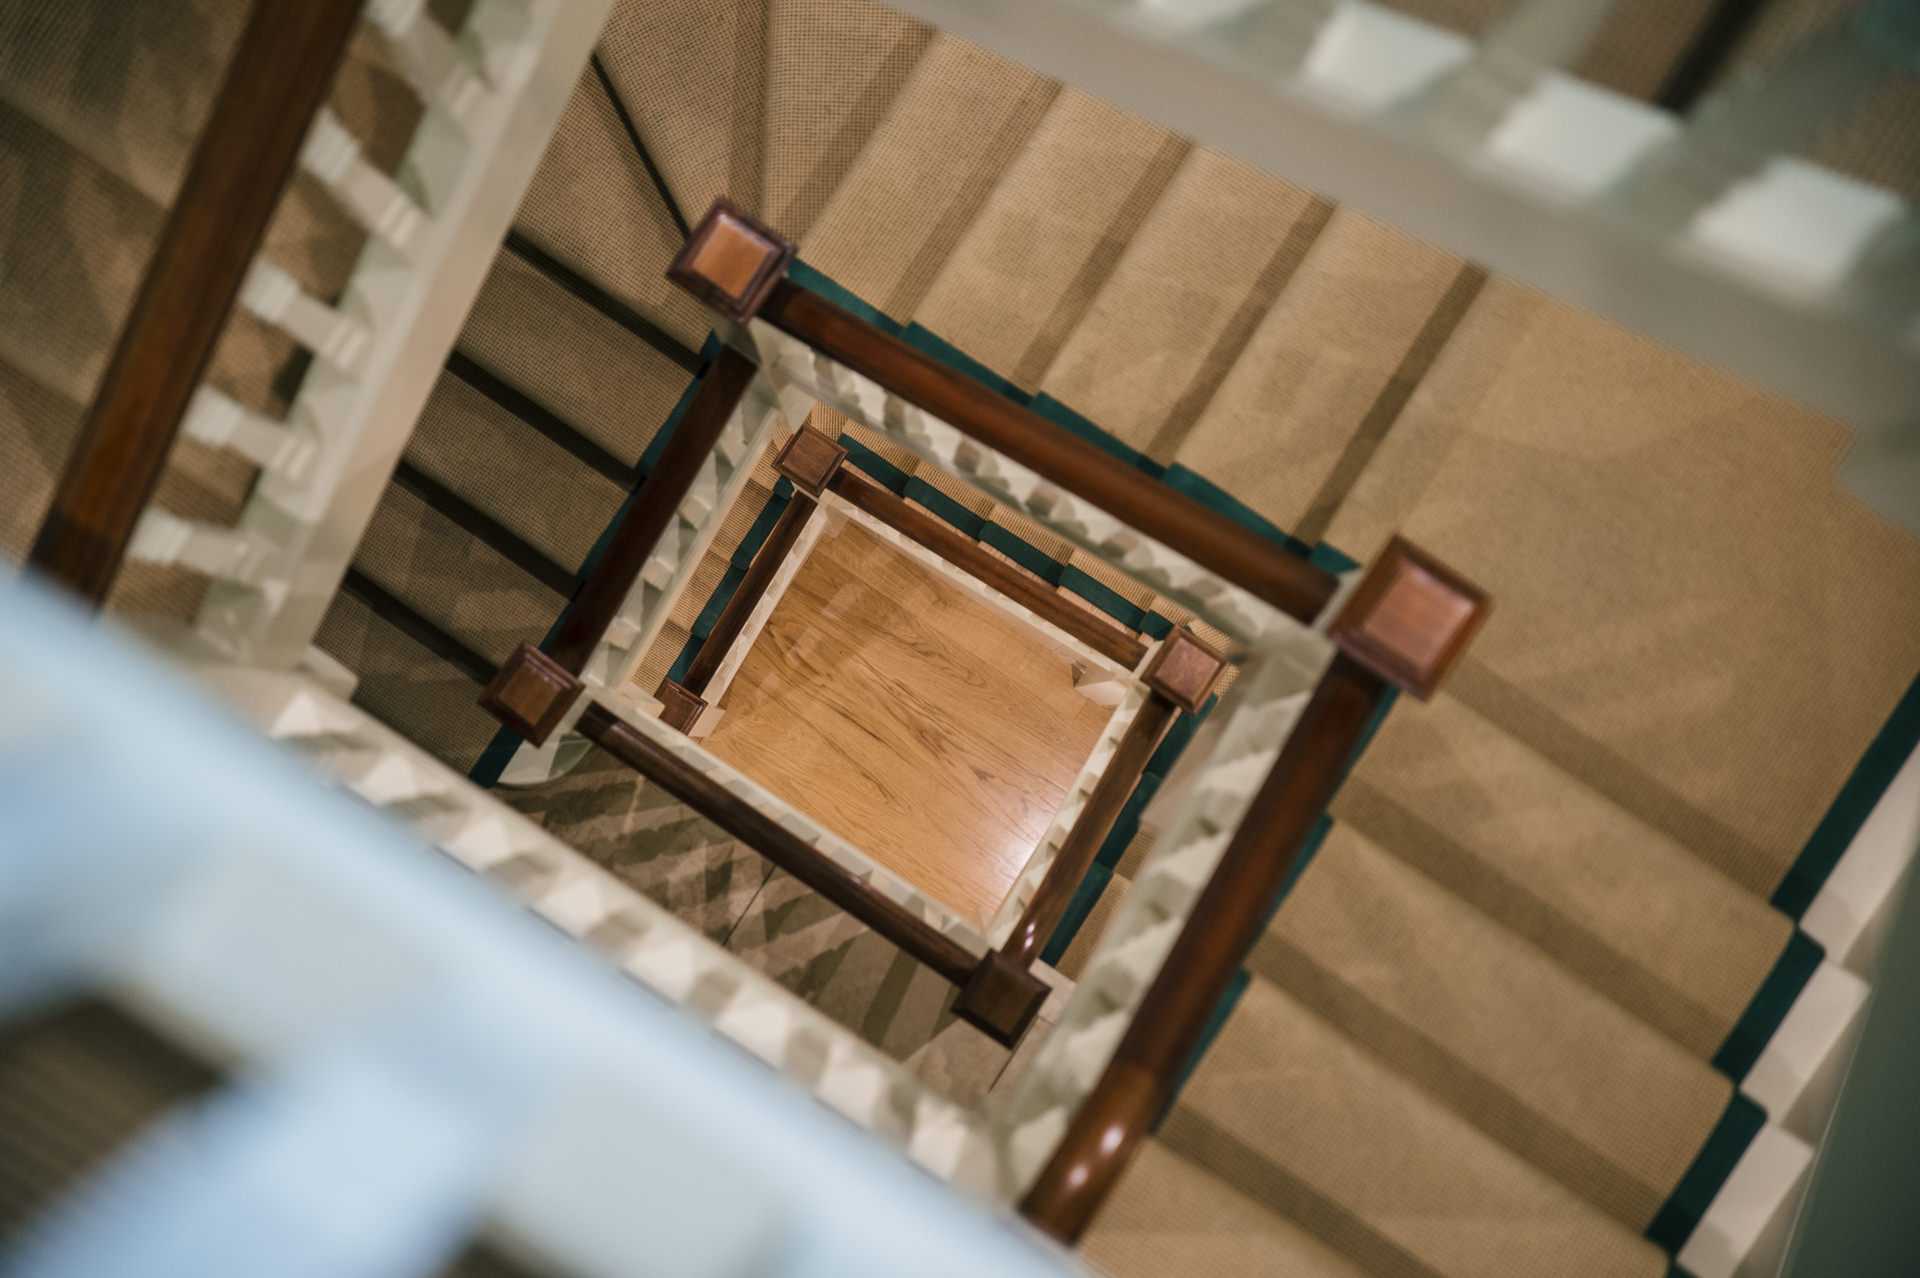 wooden square staircase view from the top